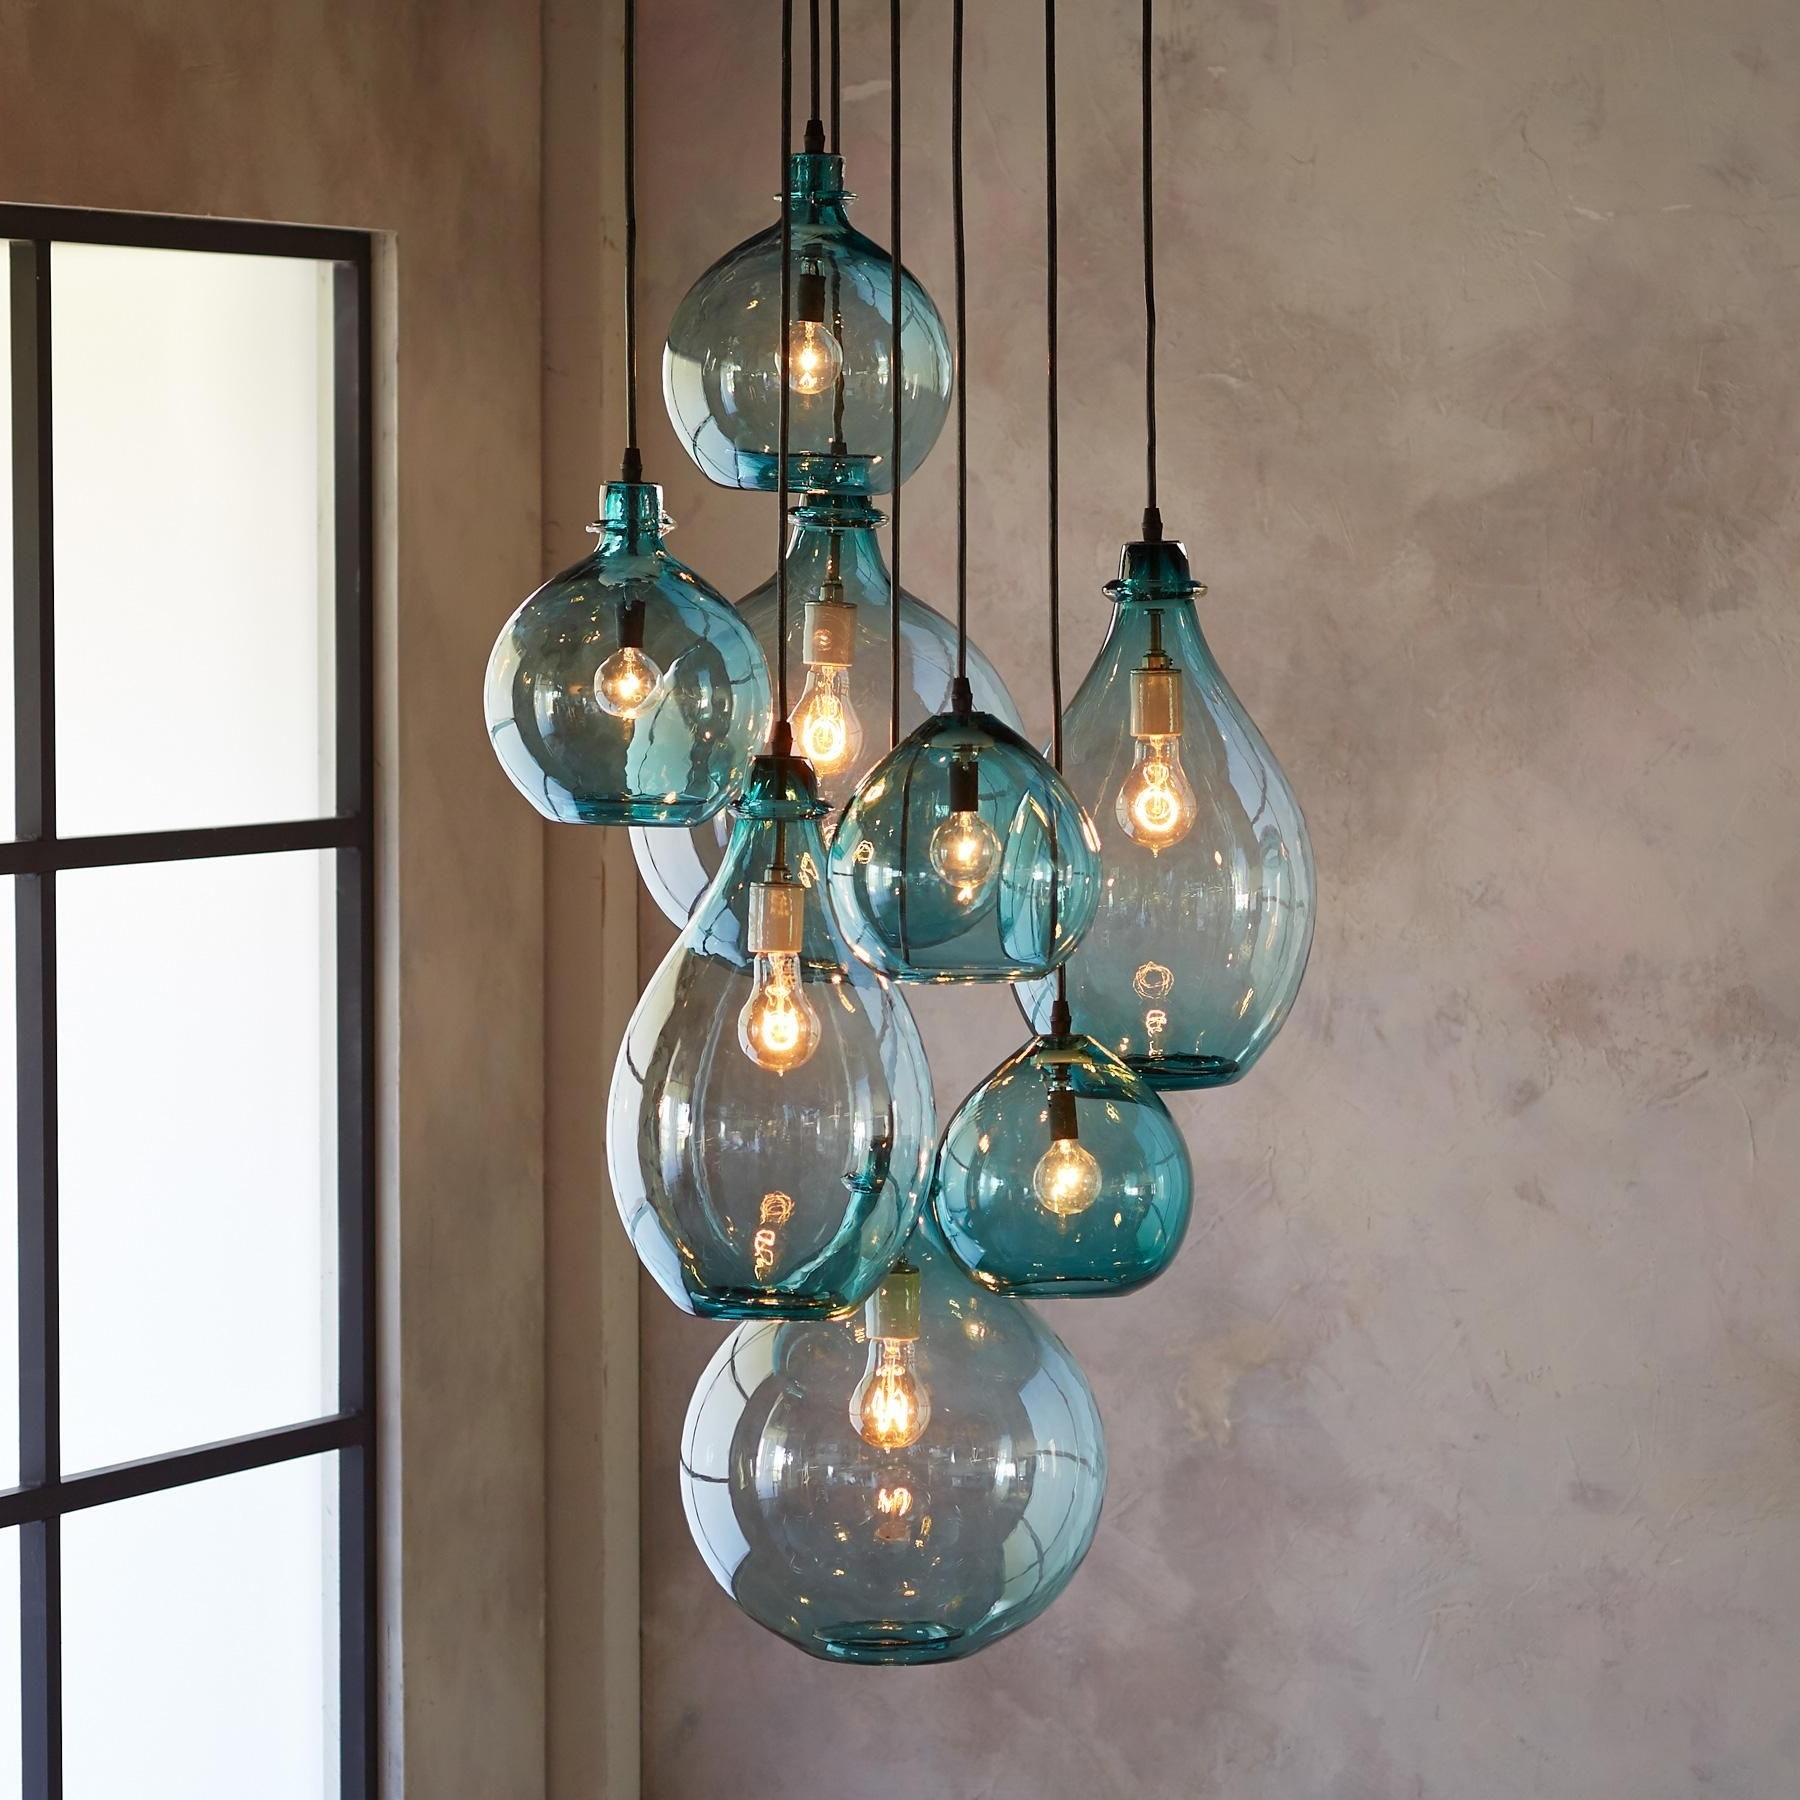 Salon Glass Pendant Canopy — Limpid Turquoise Drops Of Hand Blown Pertaining To 2018 Turquoise Color Chandeliers (View 11 of 20)